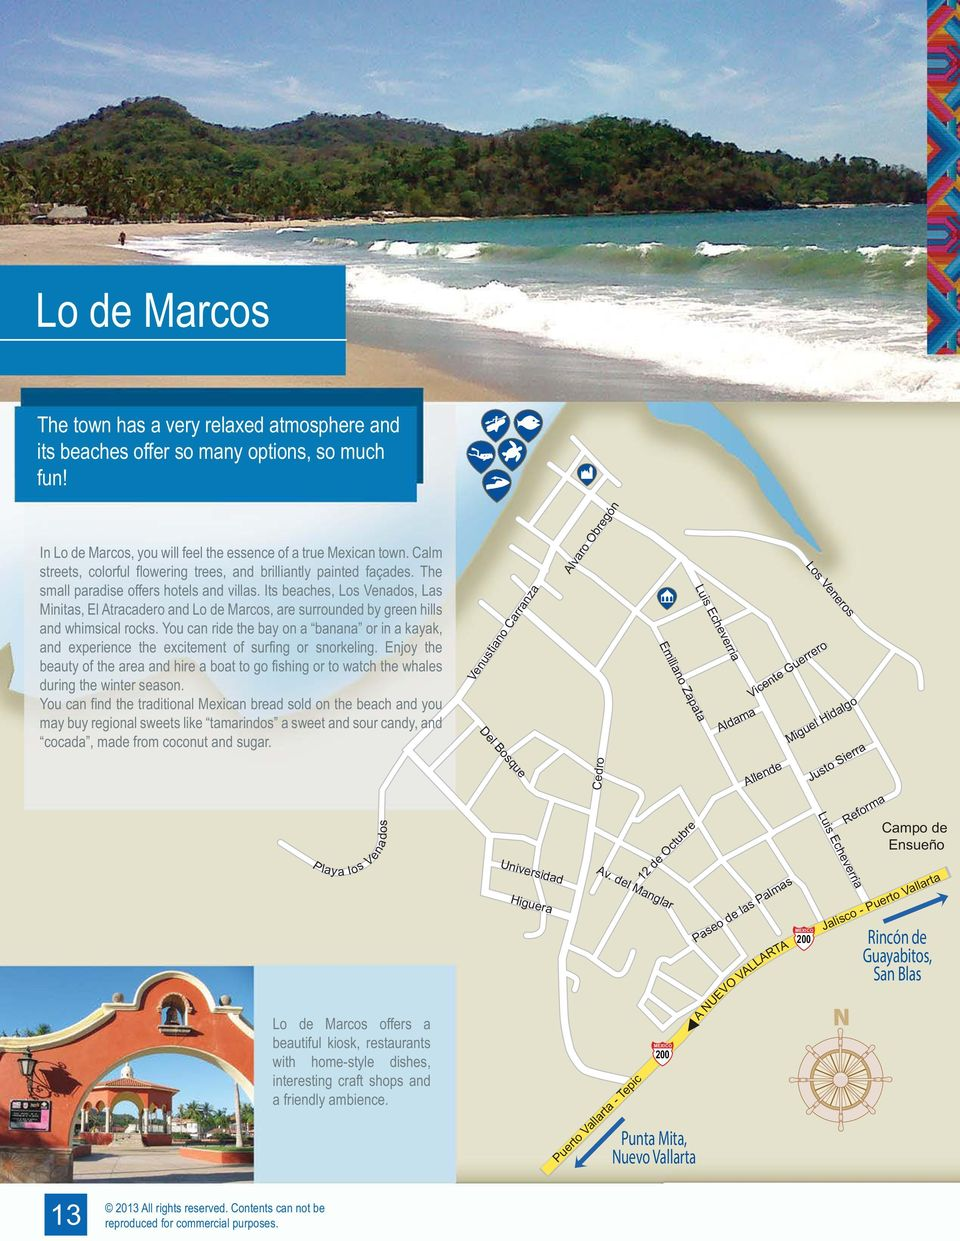 Its beaches, Los Venados, Las Minitas, El Atracadero and Lo de Marcos, are surrounded by green hills and whimsical rocks.